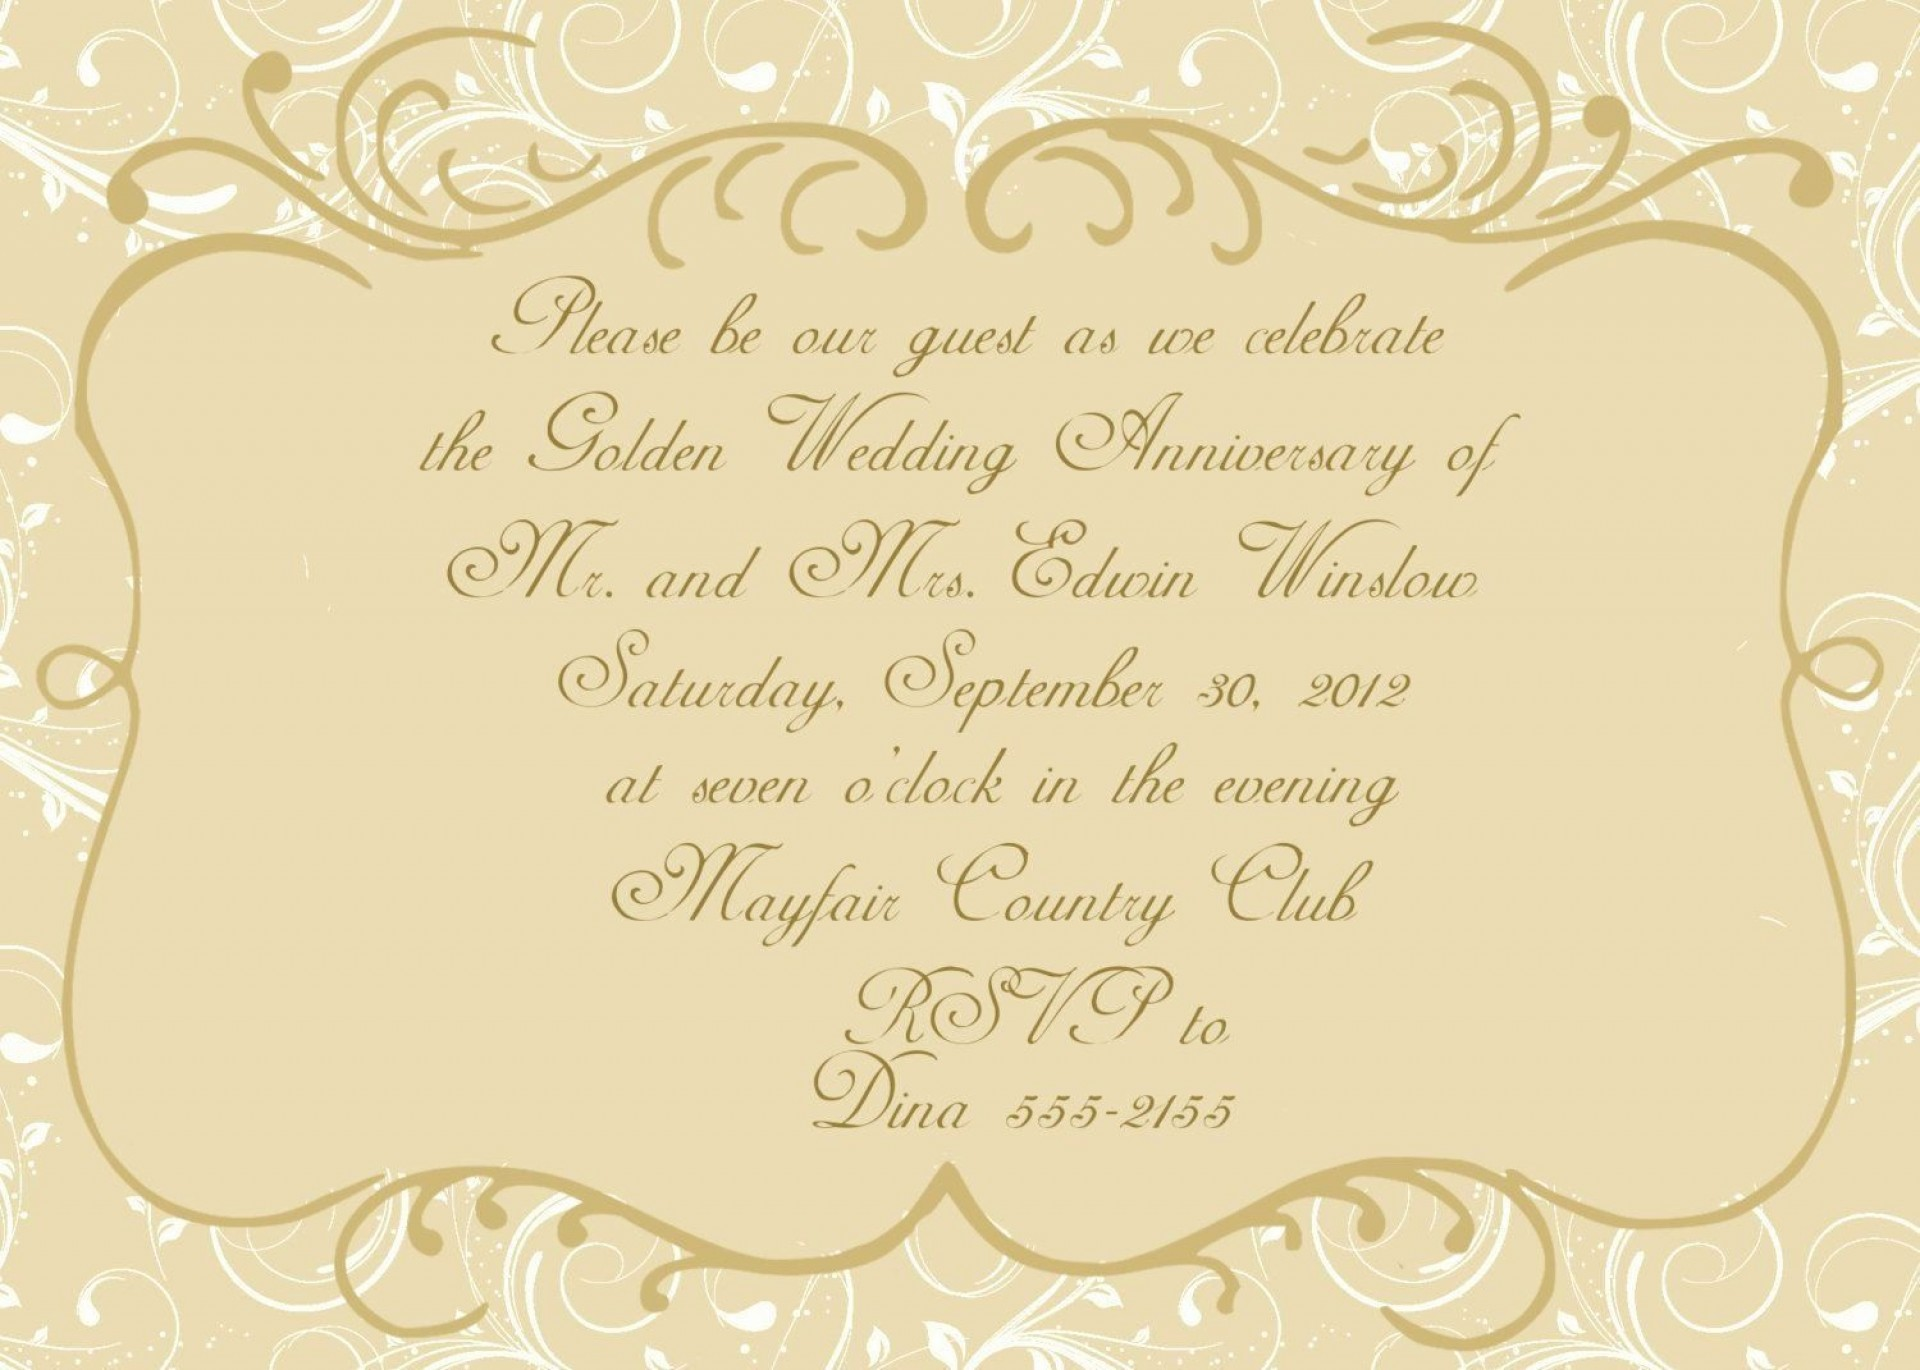 001 Archaicawful 50th Wedding Anniversary Invitation Template Design  Templates Golden Uk Free Download1920